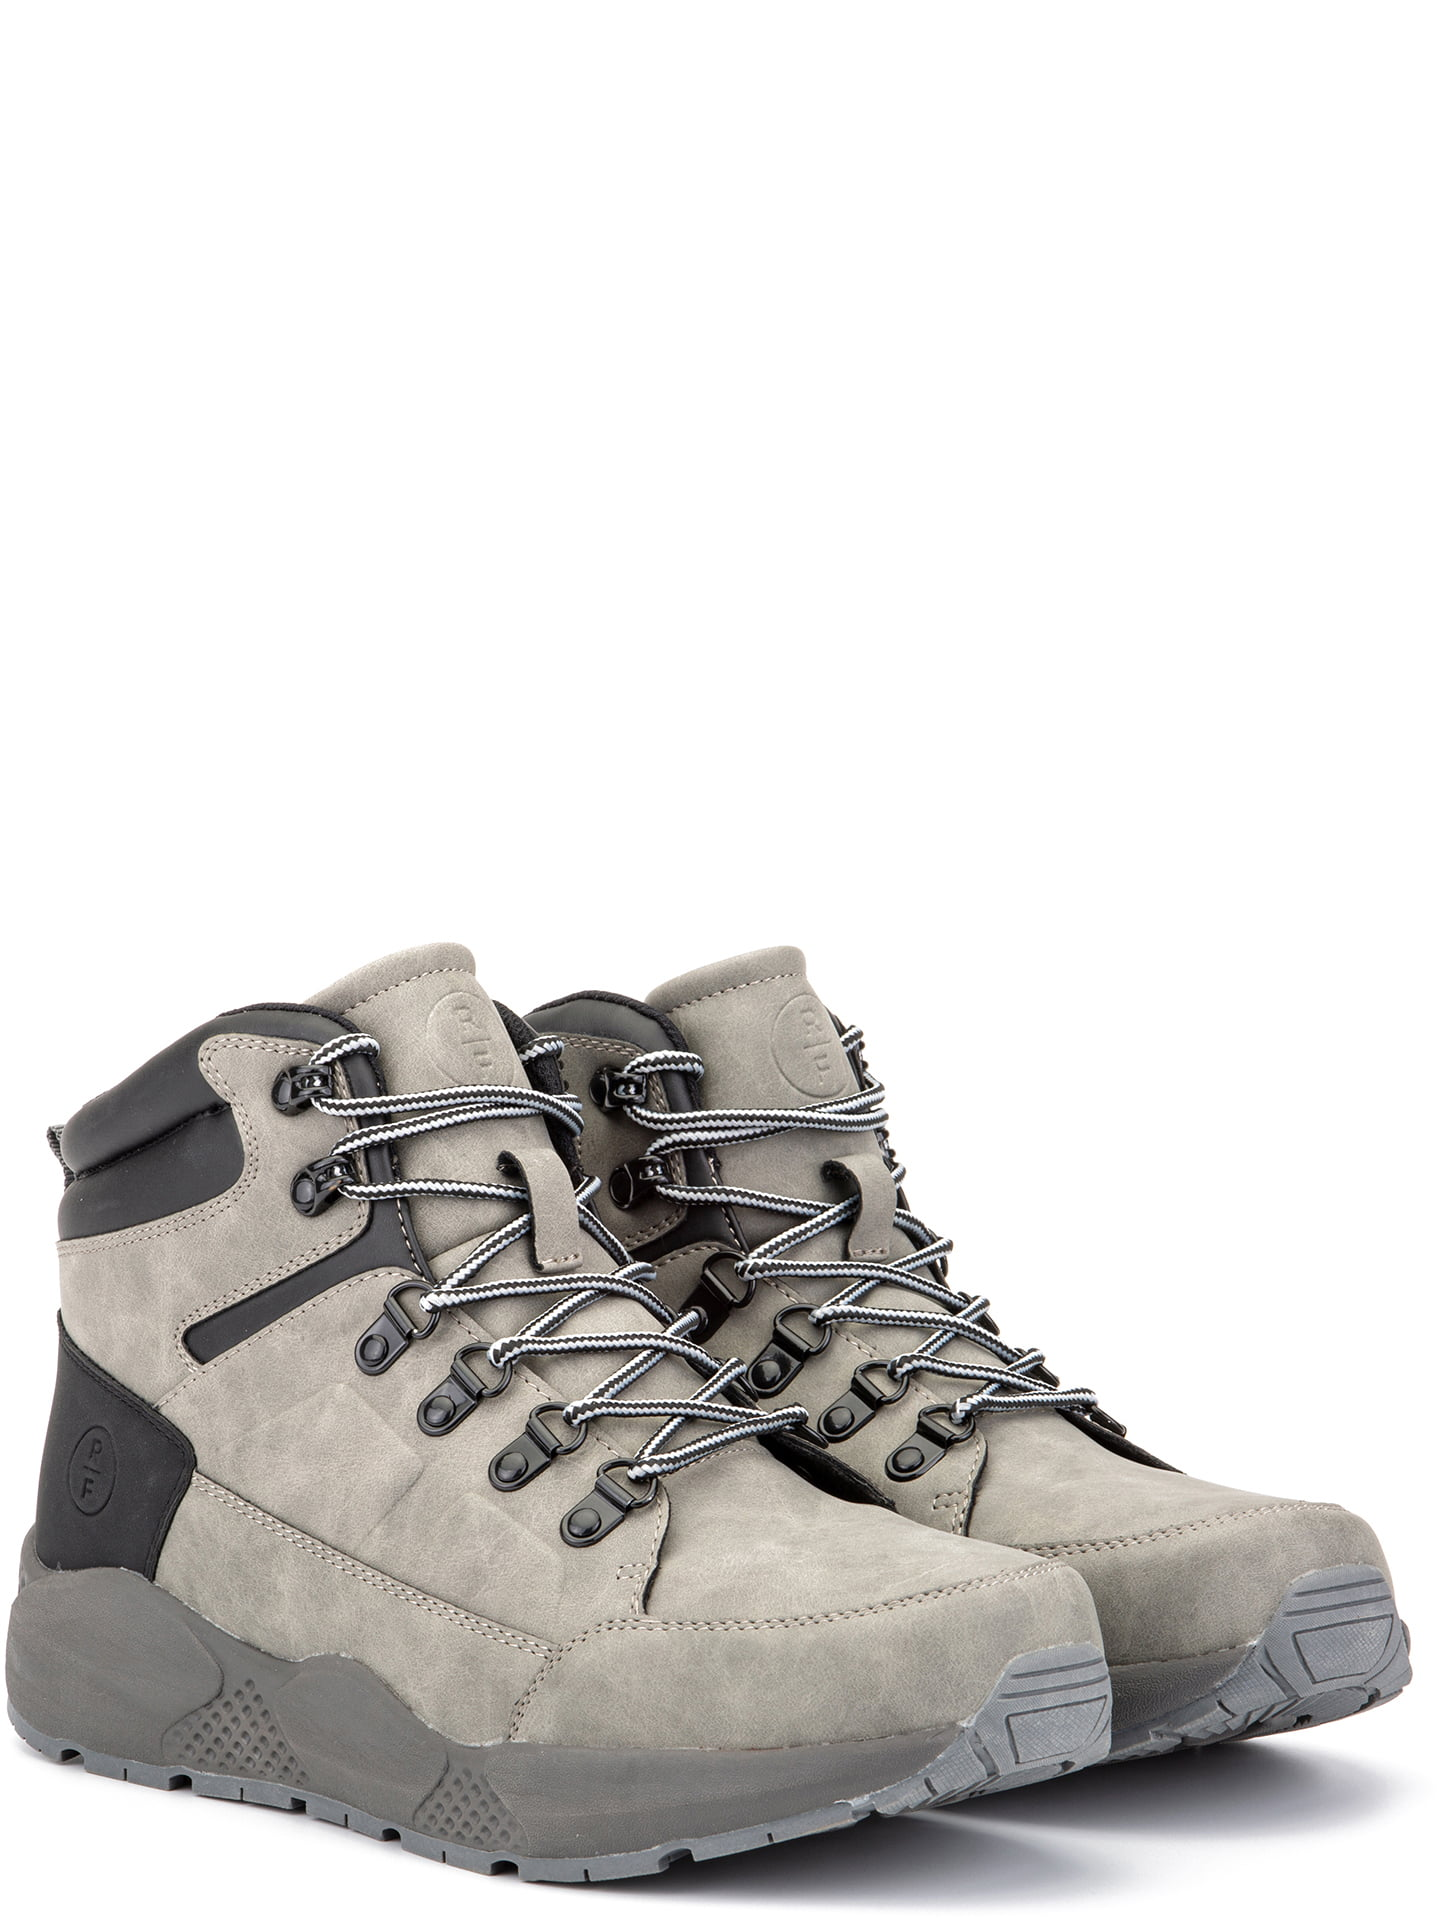 Reserved Footwear New York Reserved Footwear Men's Tucker Sneaker